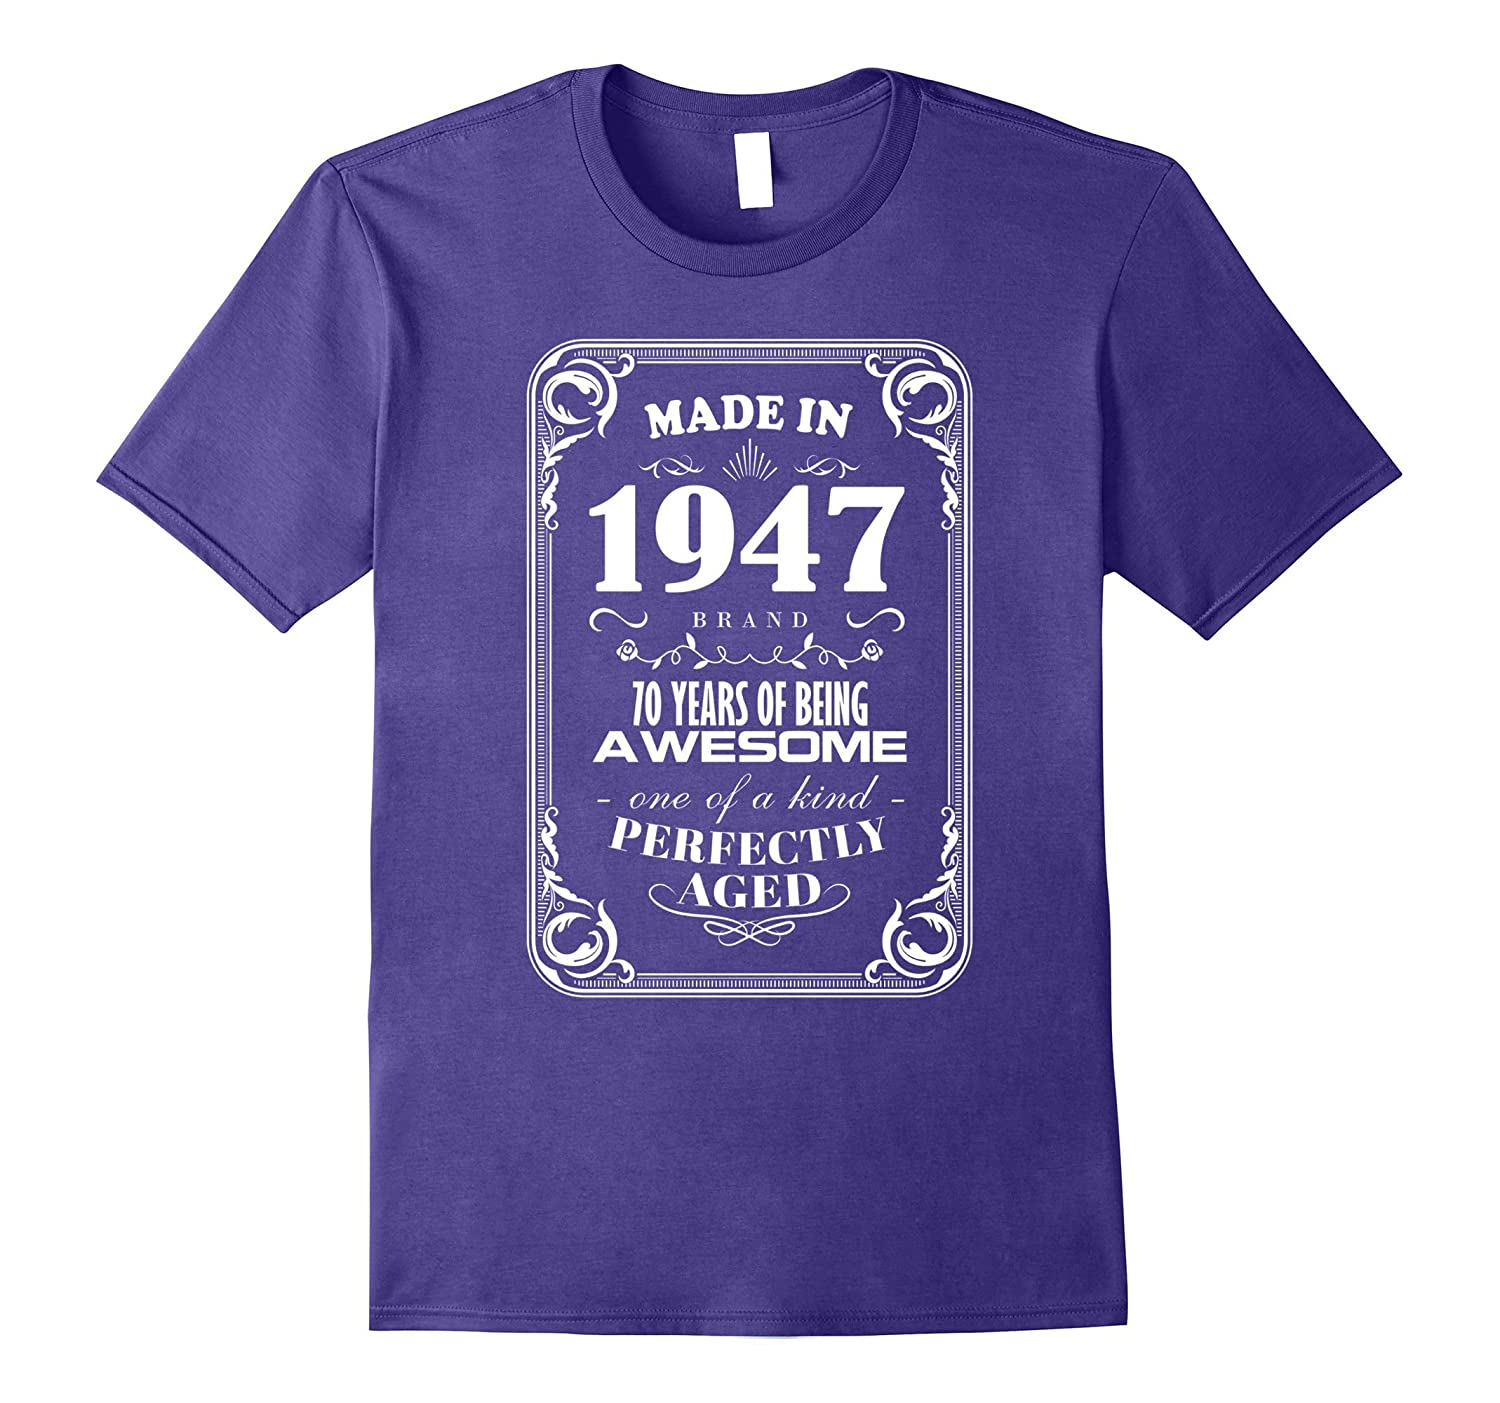 Made In 1947 T-Shirt 70th Birthday Gifts -Vaci